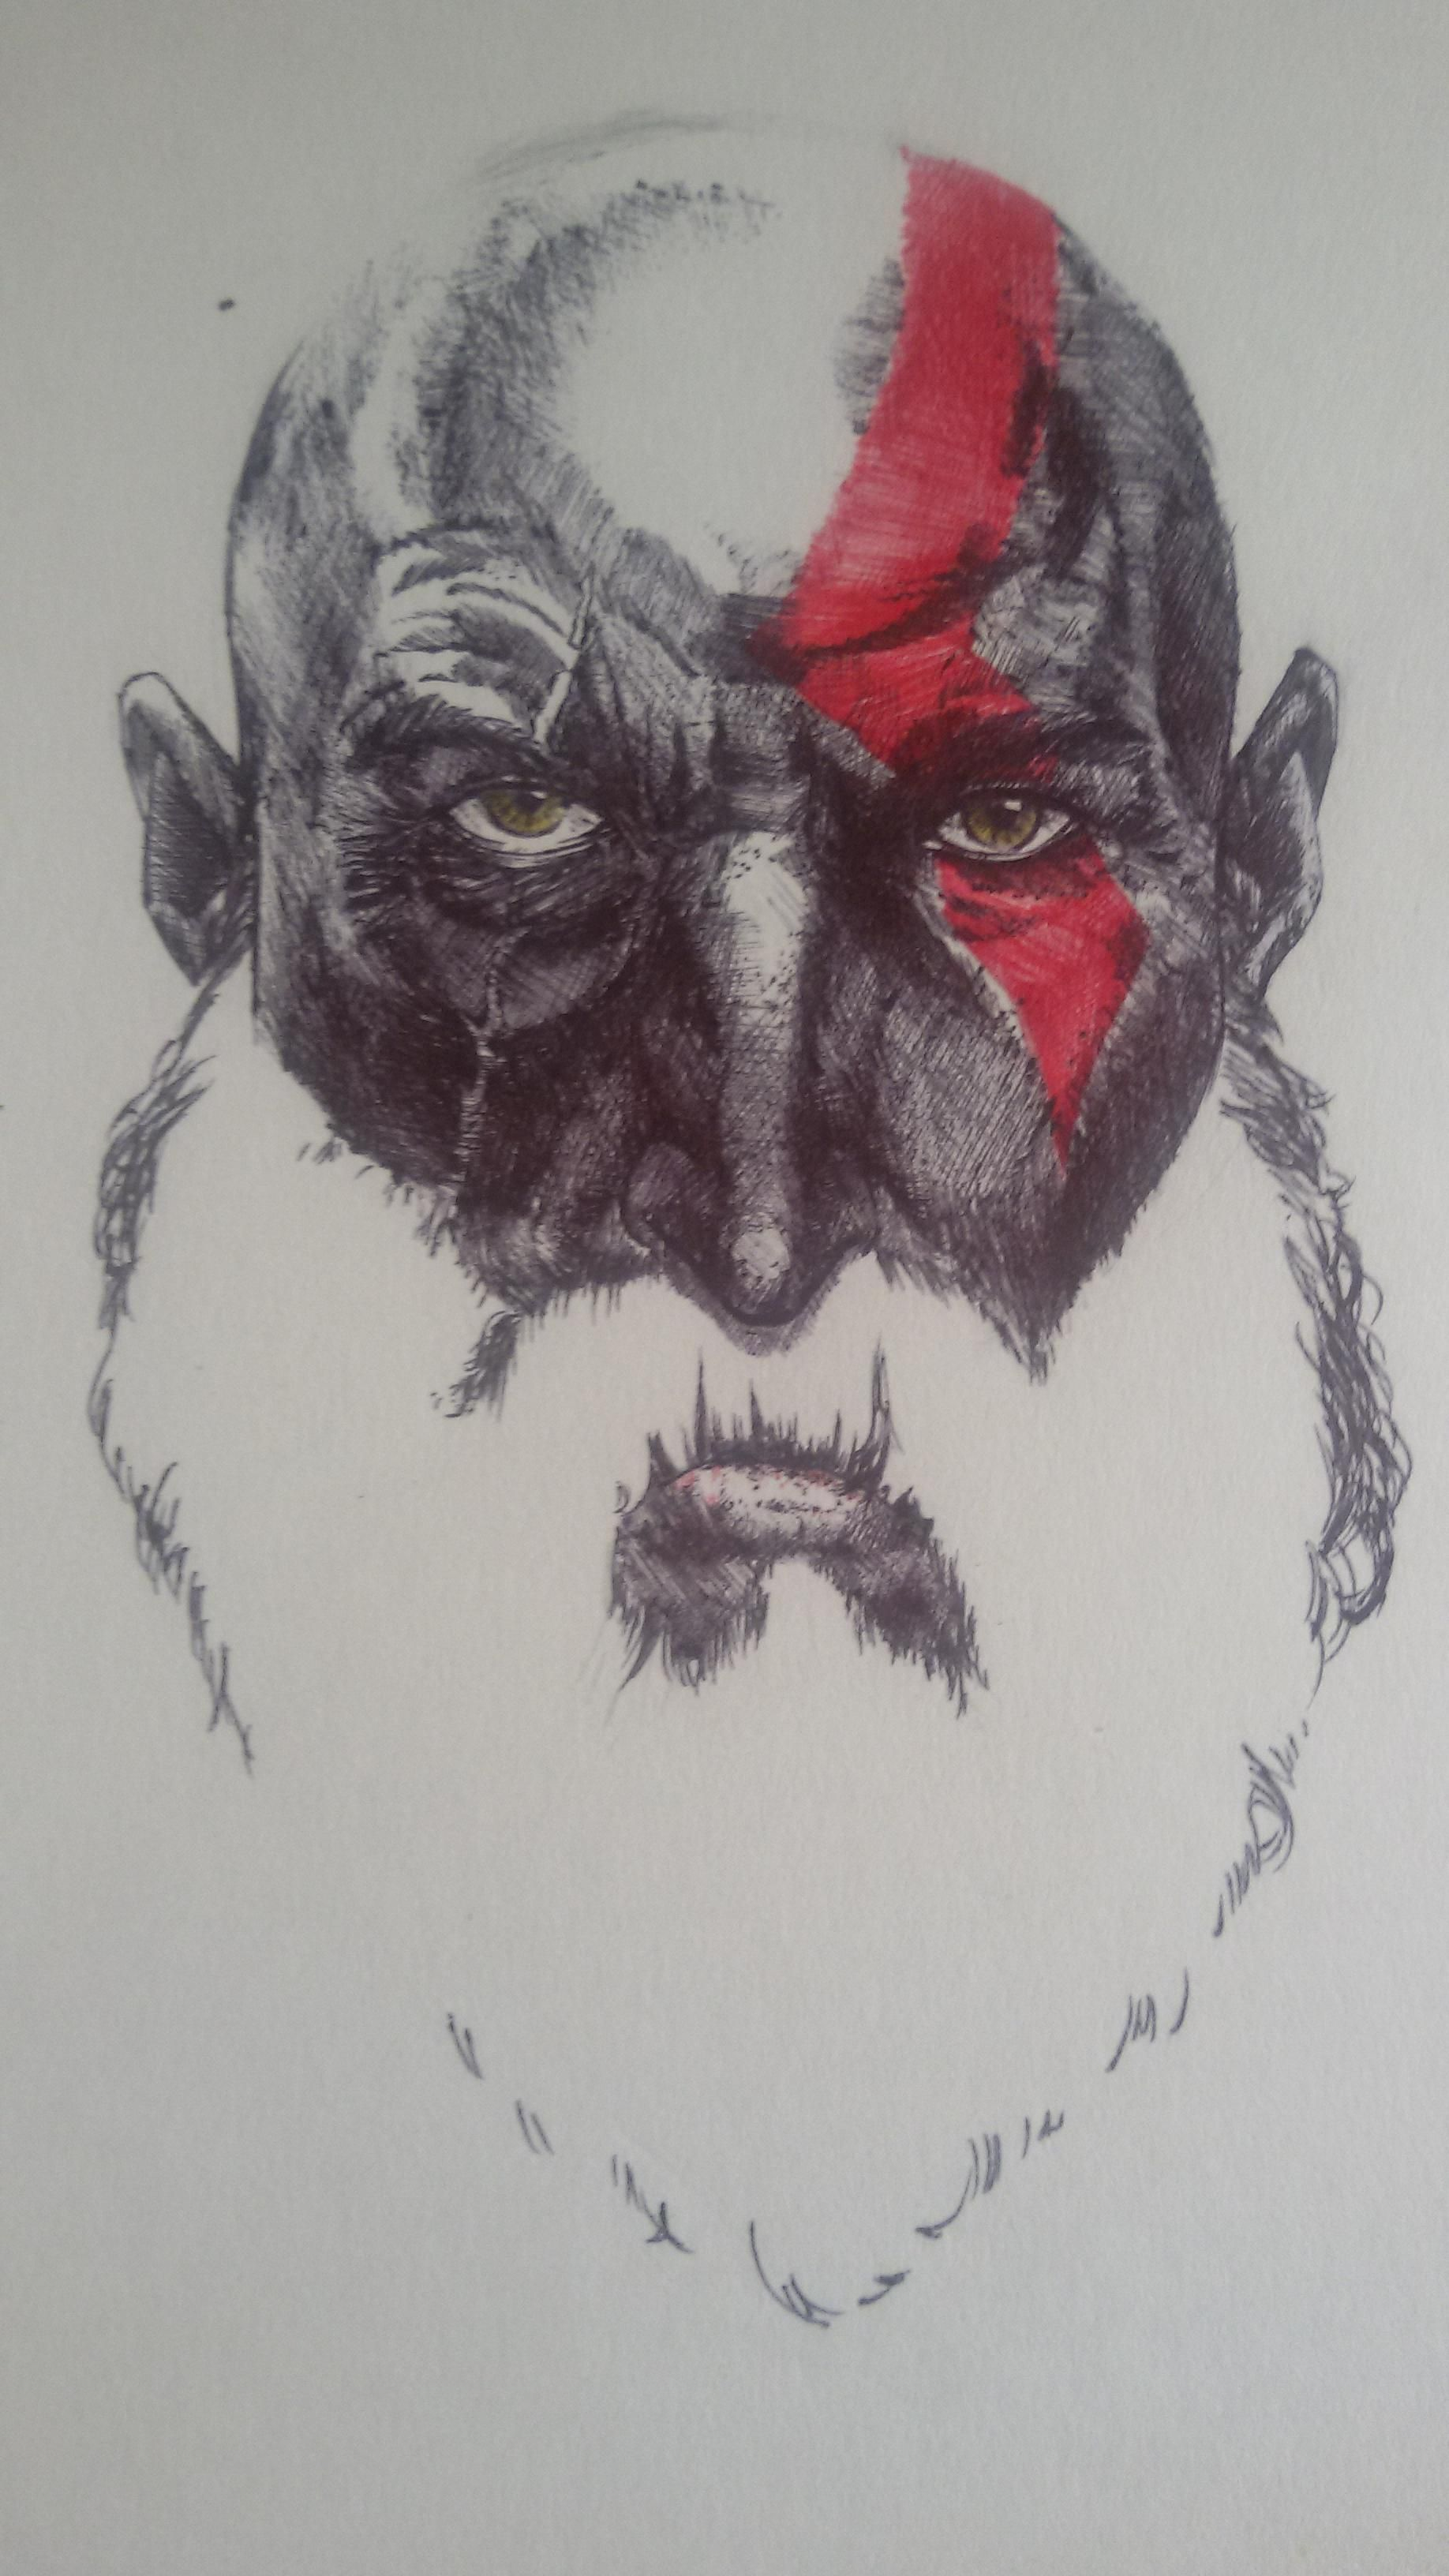 Tried to draw Kratos from the new GodofWar then made a sudden realization where it's heading. - http://ift.tt/2akUfJI